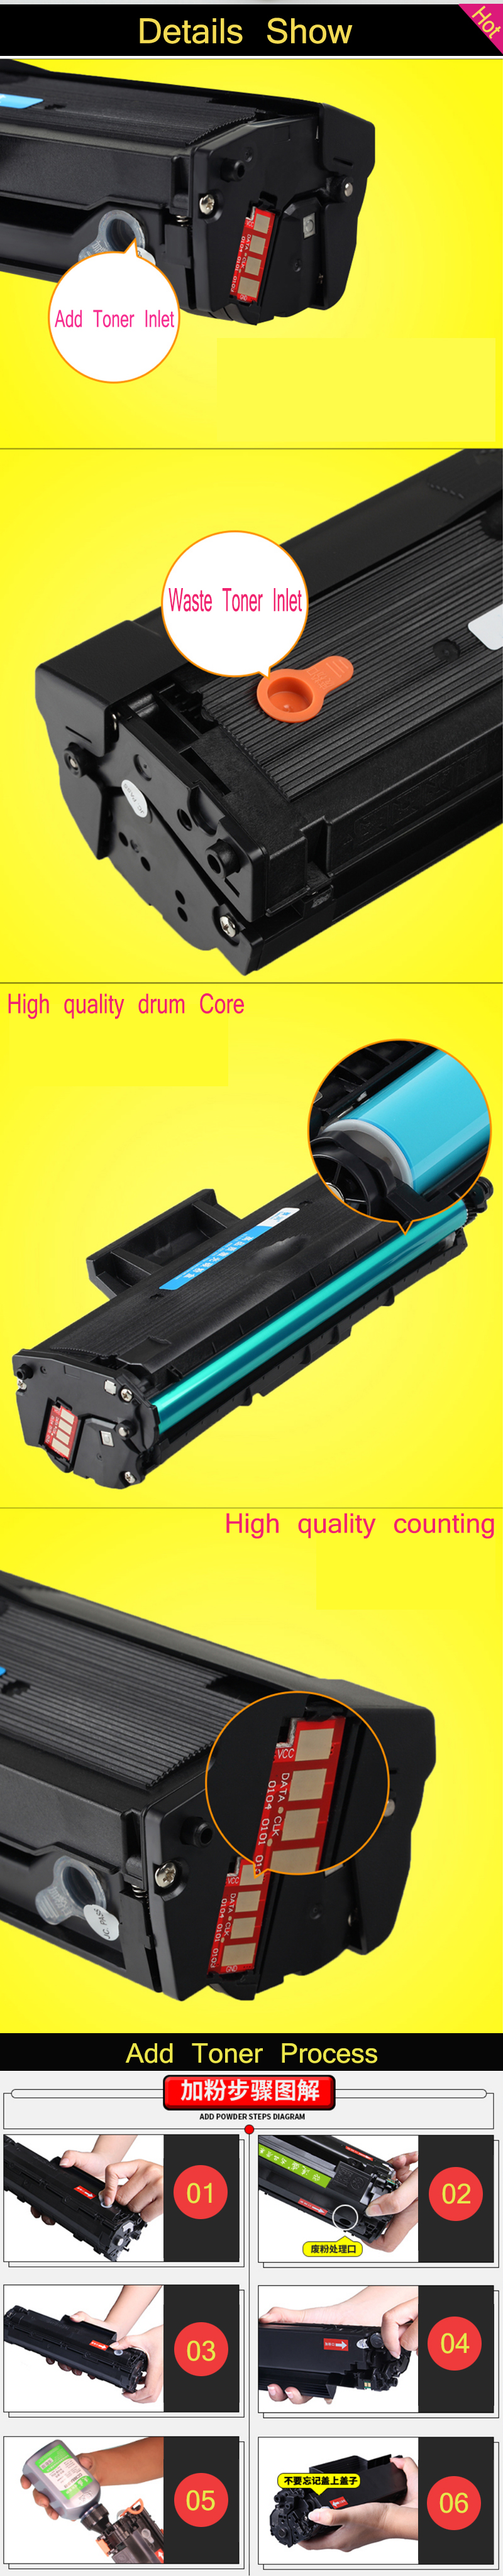 US $41 48 5% OFF Refill more 2 times For samsung 111 toner cartridge for  Samsung M2070/M2070W/M2070F/M2070FW laser printer-in Toner Cartridges from